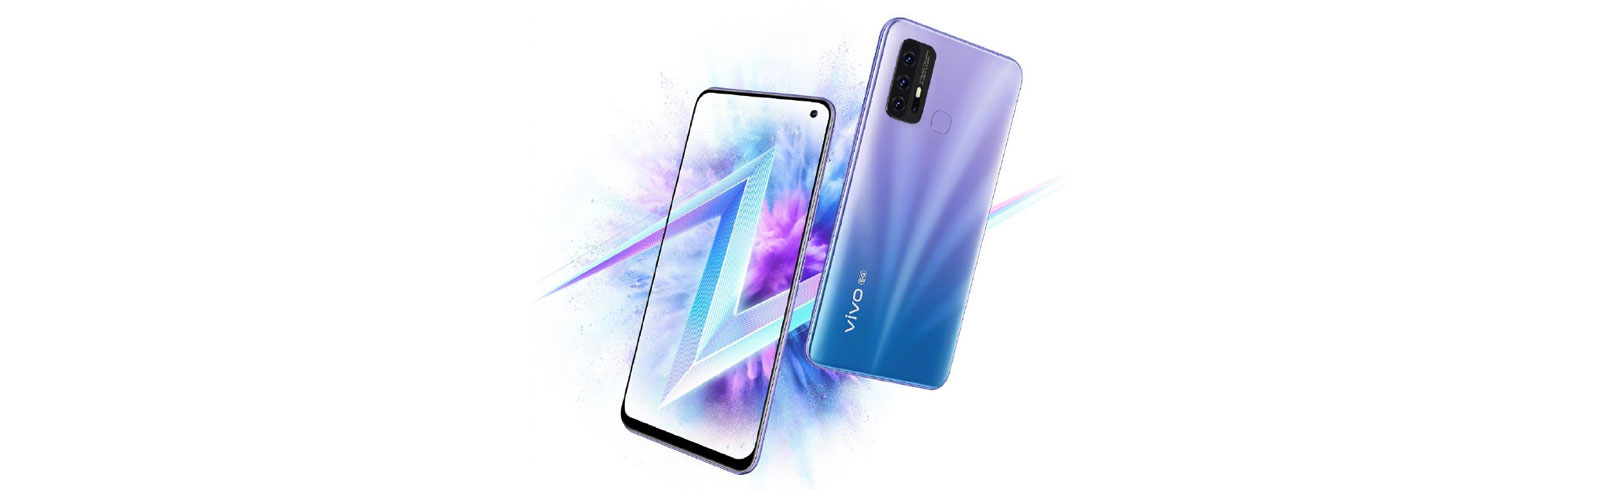 Vivo Z6 specifications, what is known so far